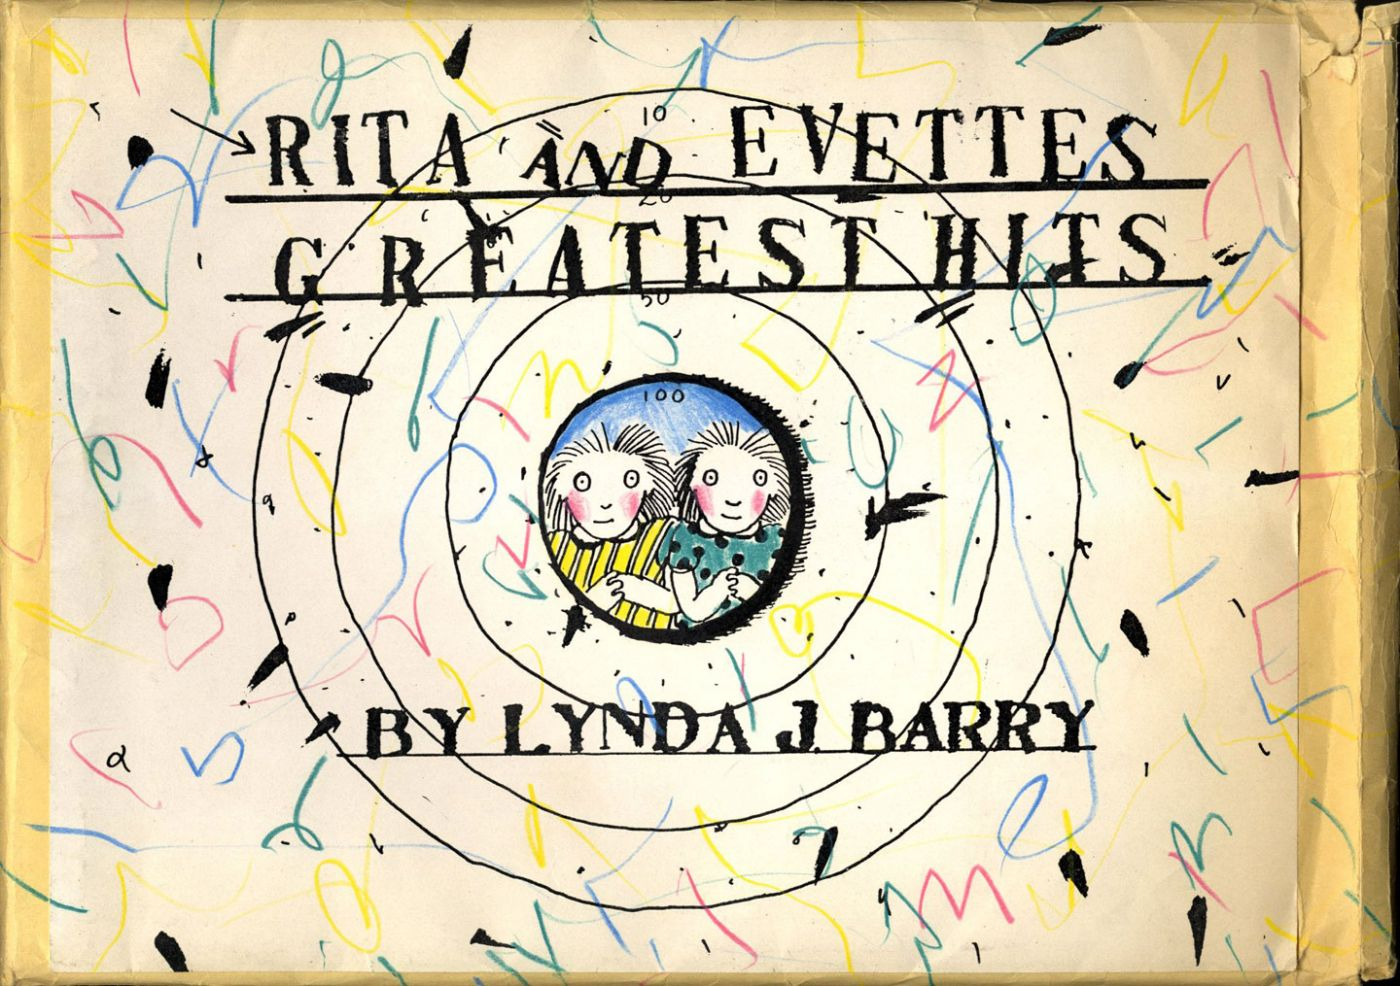 Lynda J. Barry: Two Sisters / Rita and Evette's Greatest Hits (Xerox book)